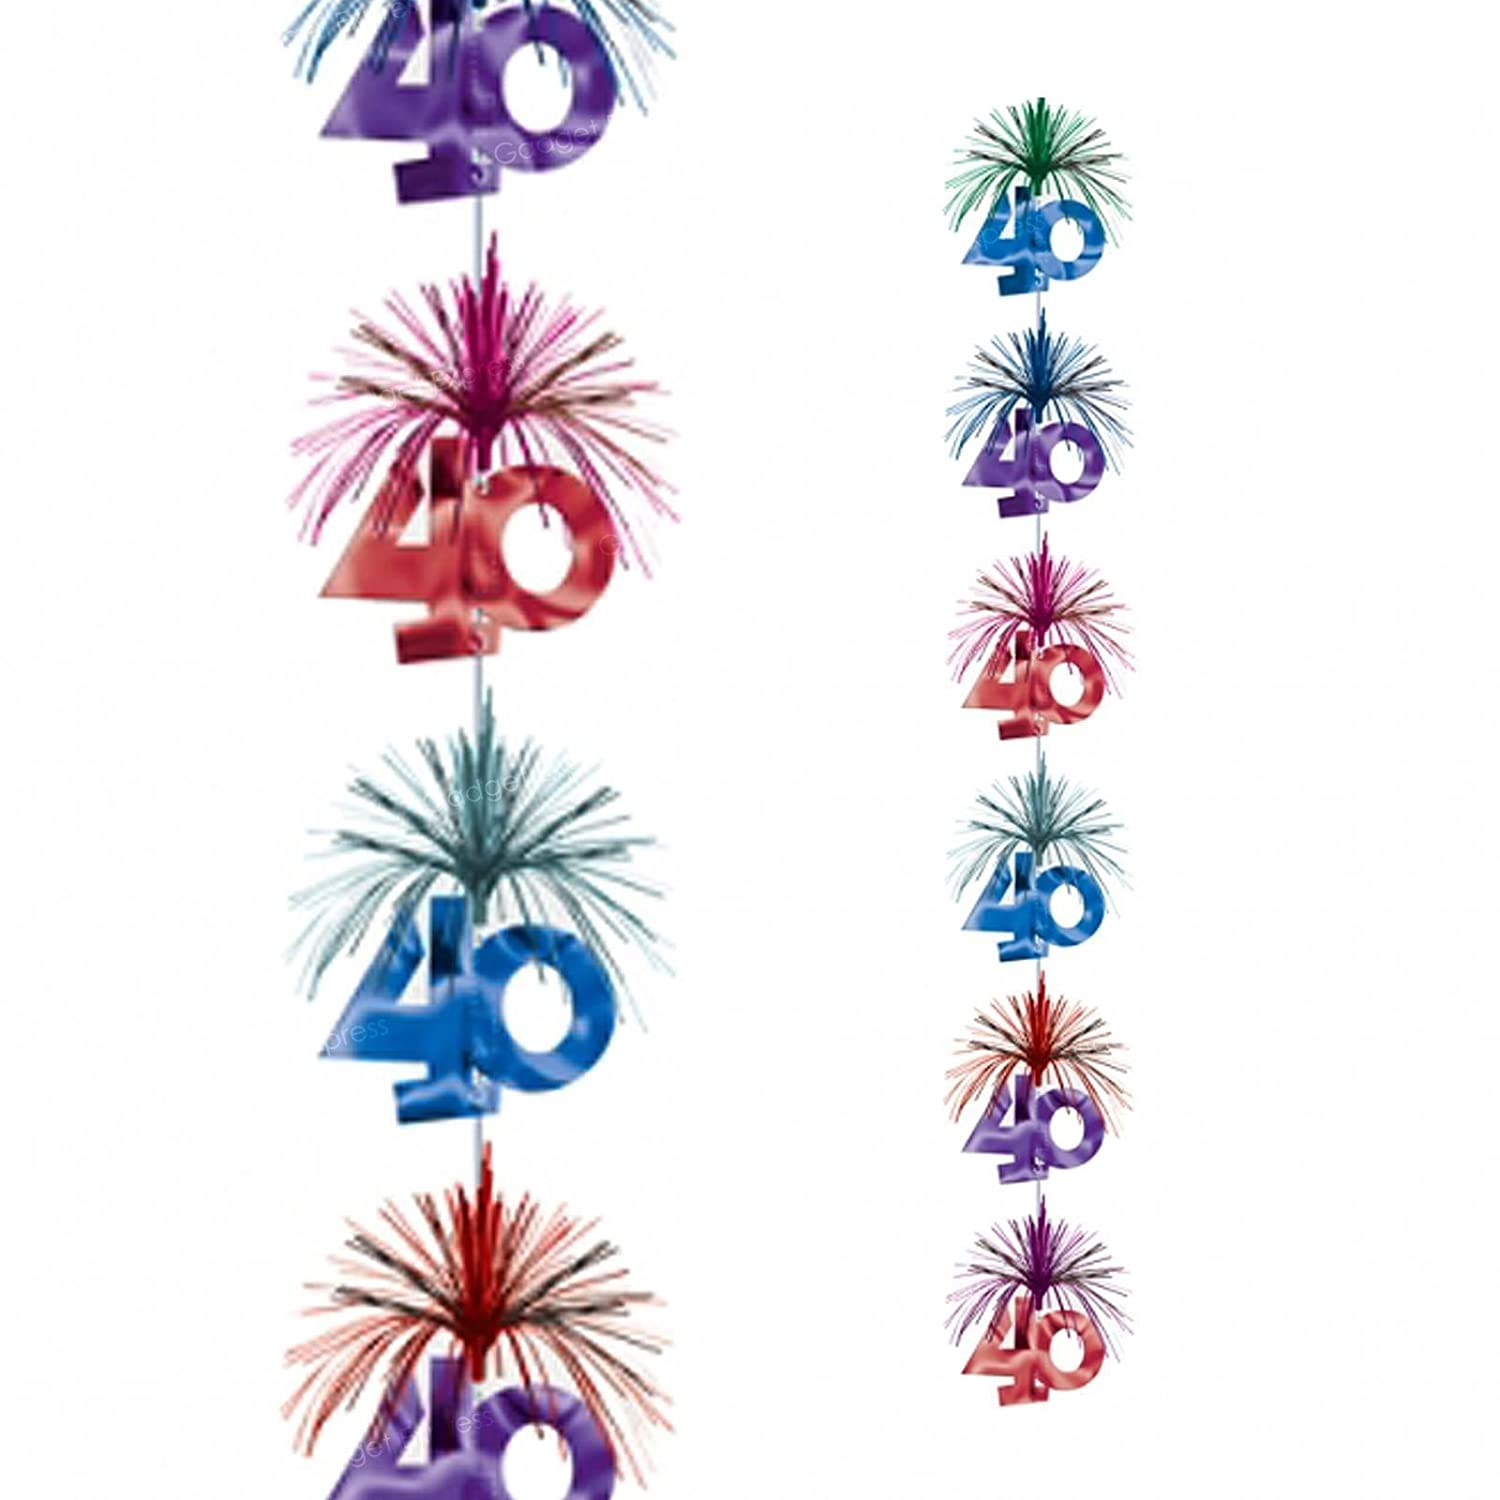 7ft 40th Birthday Cascade Column Sparkling Decoration Unisex Ladies Mens Party Sparkly Foil Hanging Cieling Banner Multicoloured Celebration - Red / Blue / Purple / Green Amscan